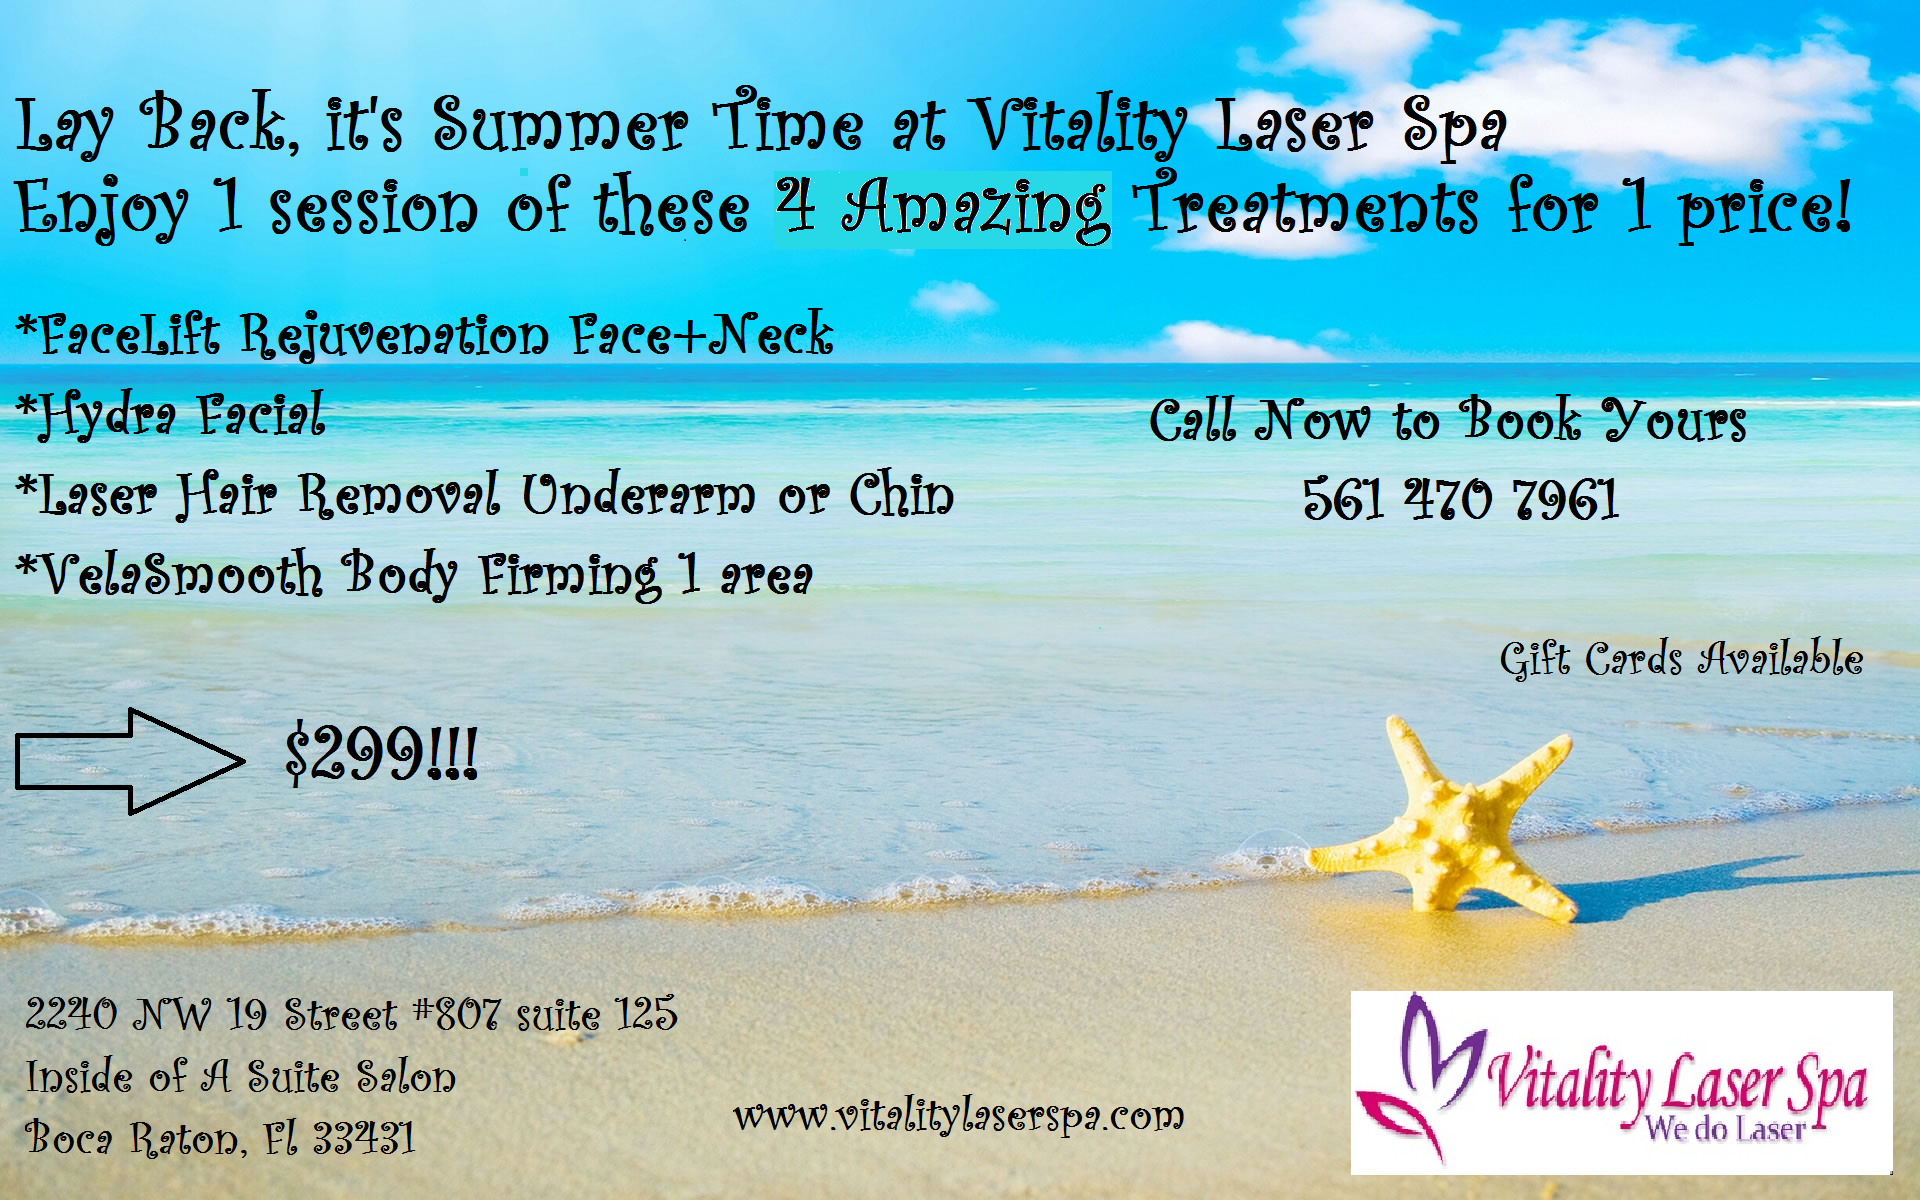 Vitality laser spa boca raton summer promotion laser hair removal skin treatment